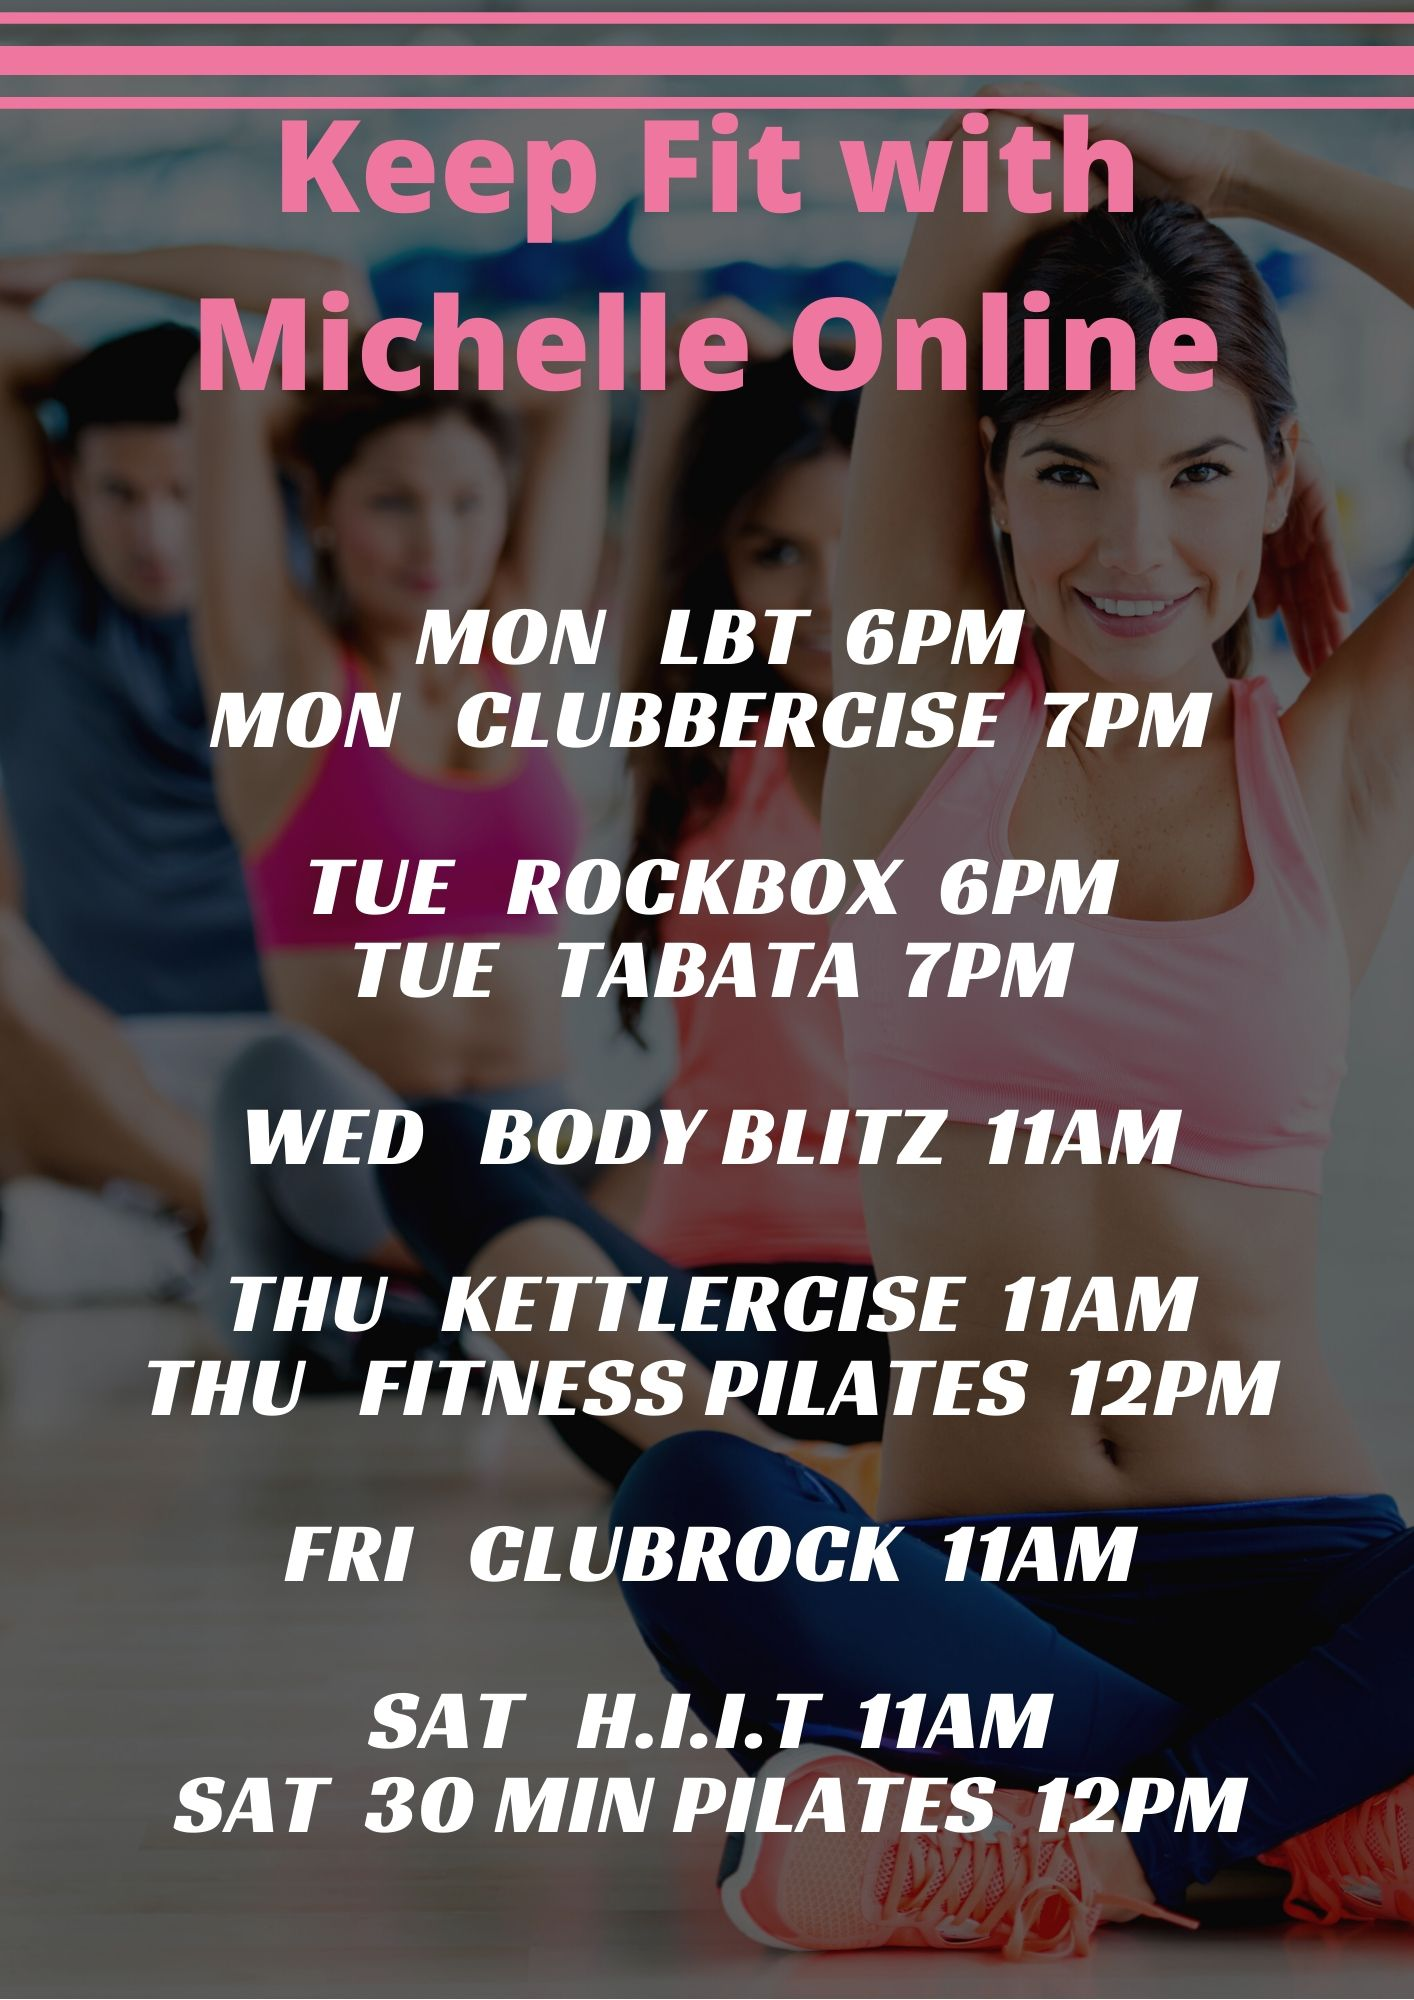 KEEP FIT WITH MICHELLE ONLINE-5.jpg